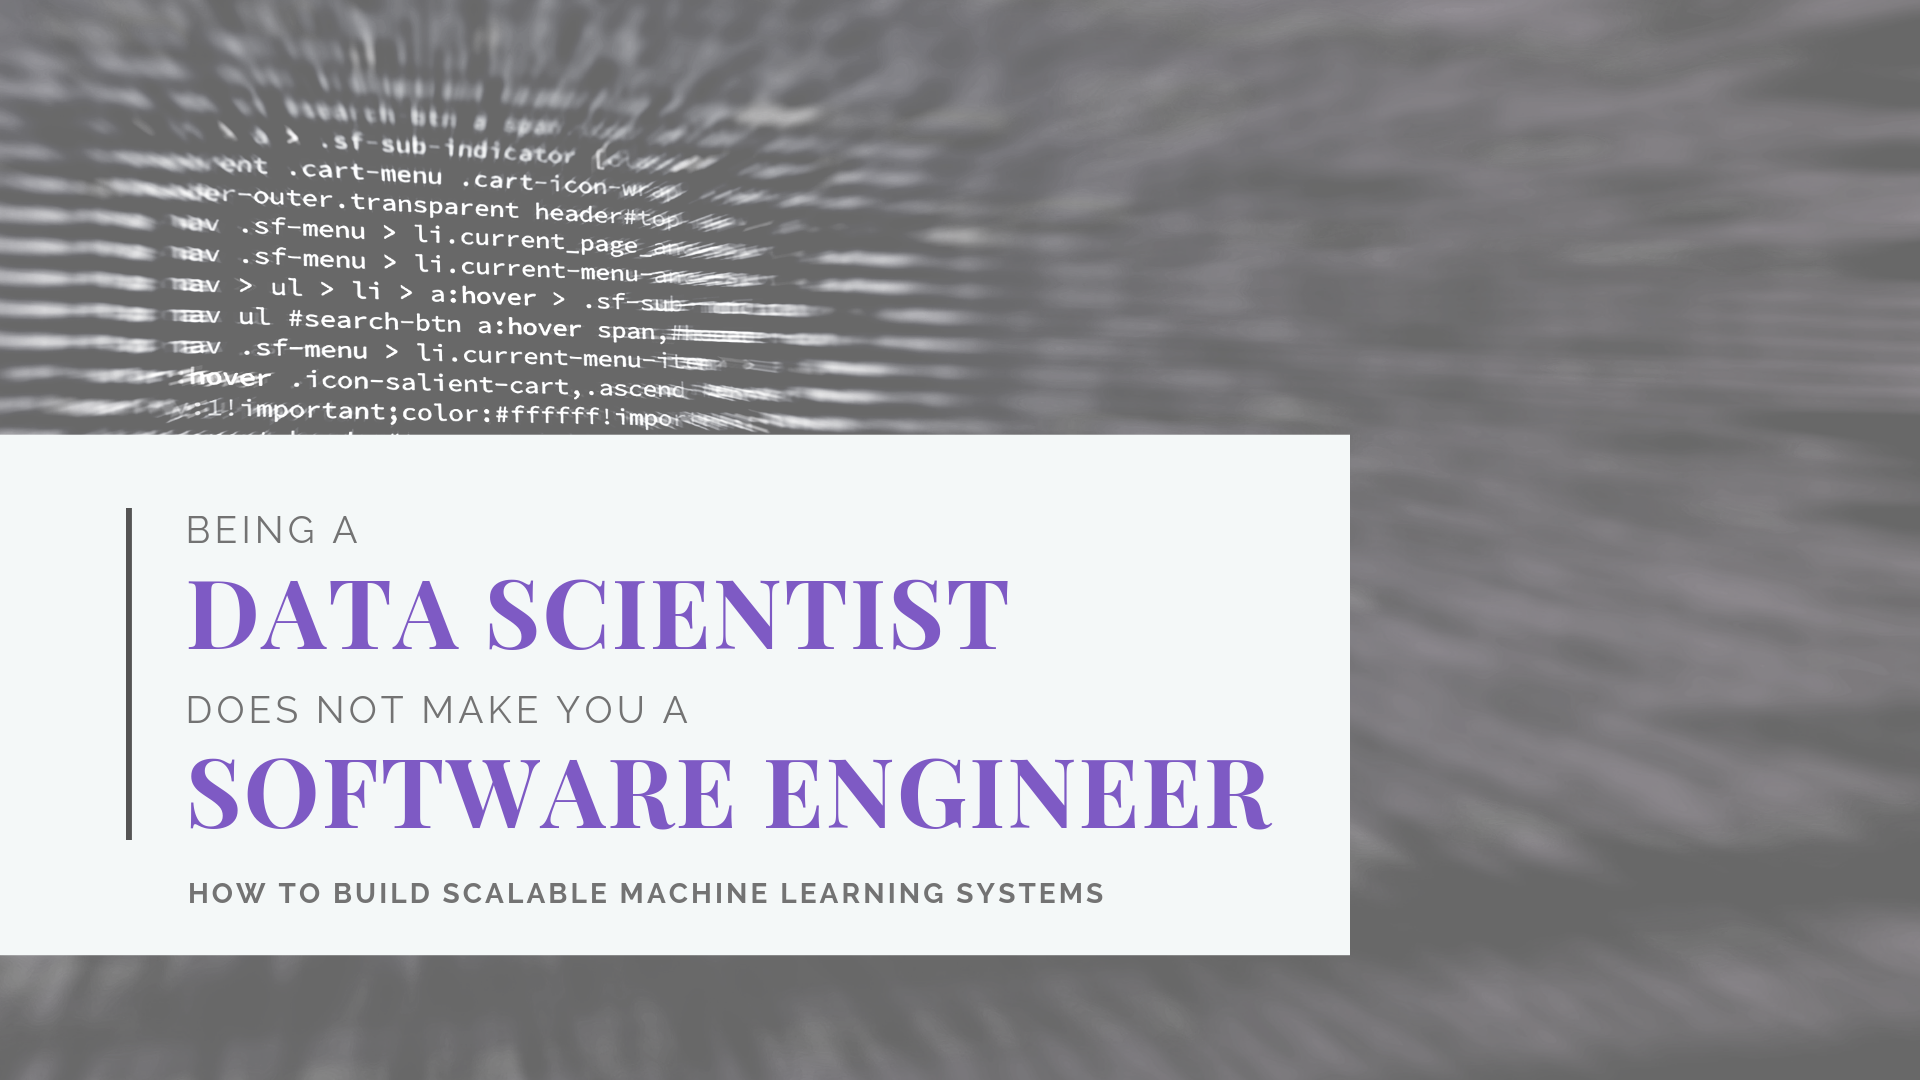 Being a Data Scientist does not make you a Software Engineer!